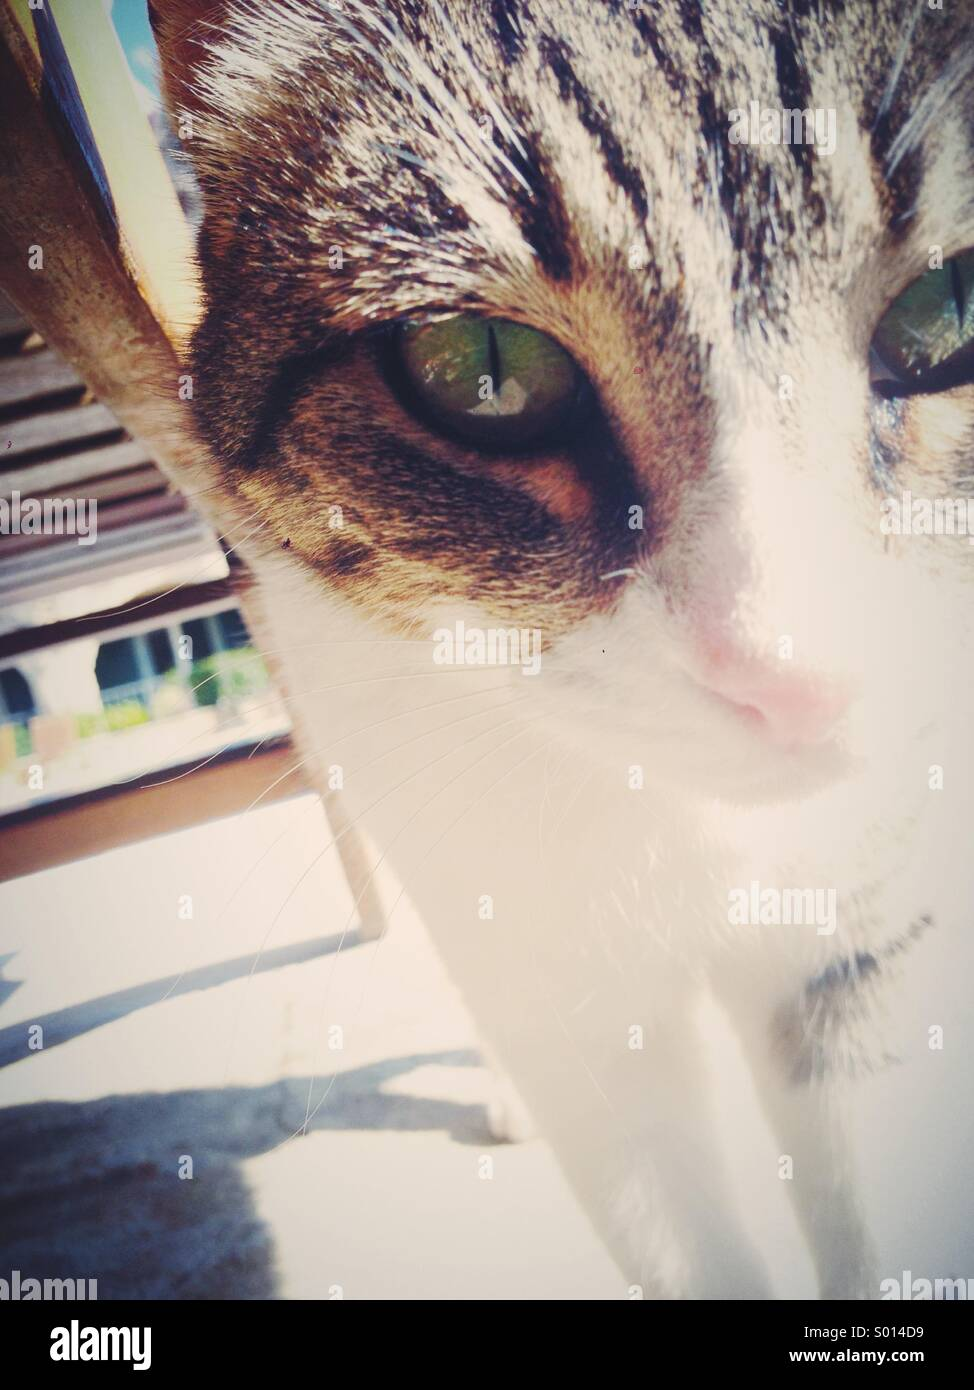 Close up of a cat - Stock Image